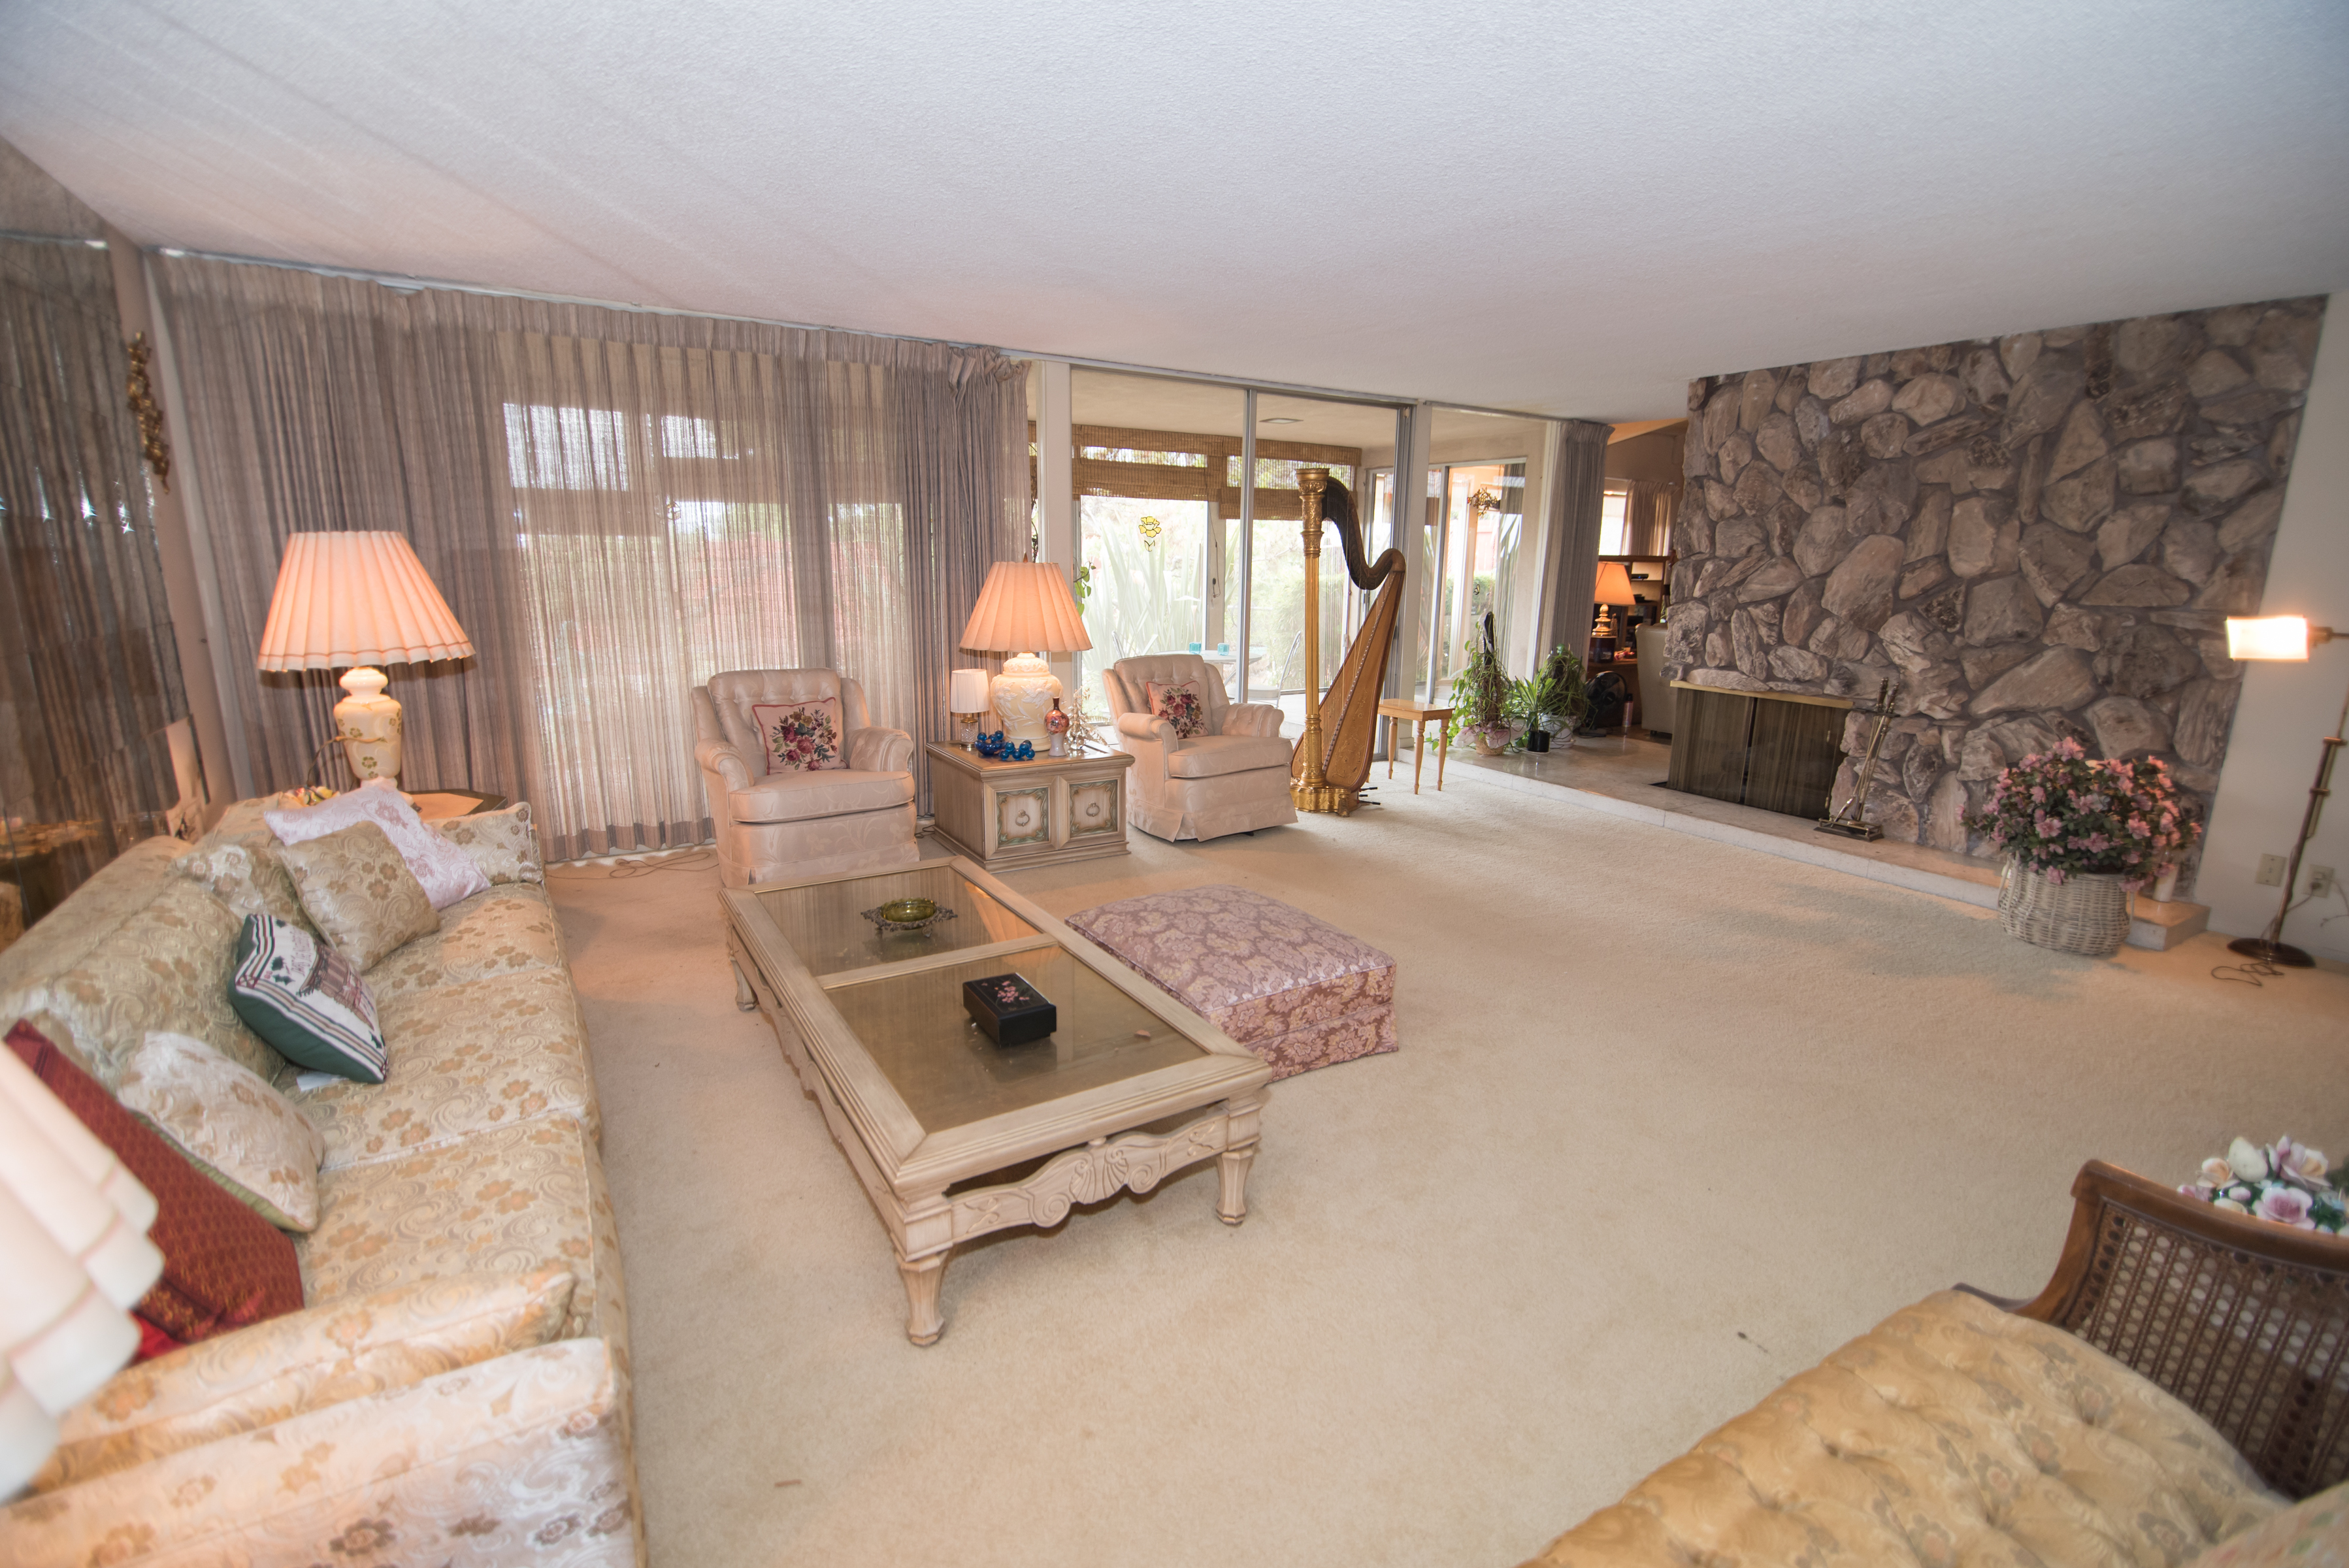 Living Room 5pm sunday open house 2-5pm - 4 + 4 ladera heights